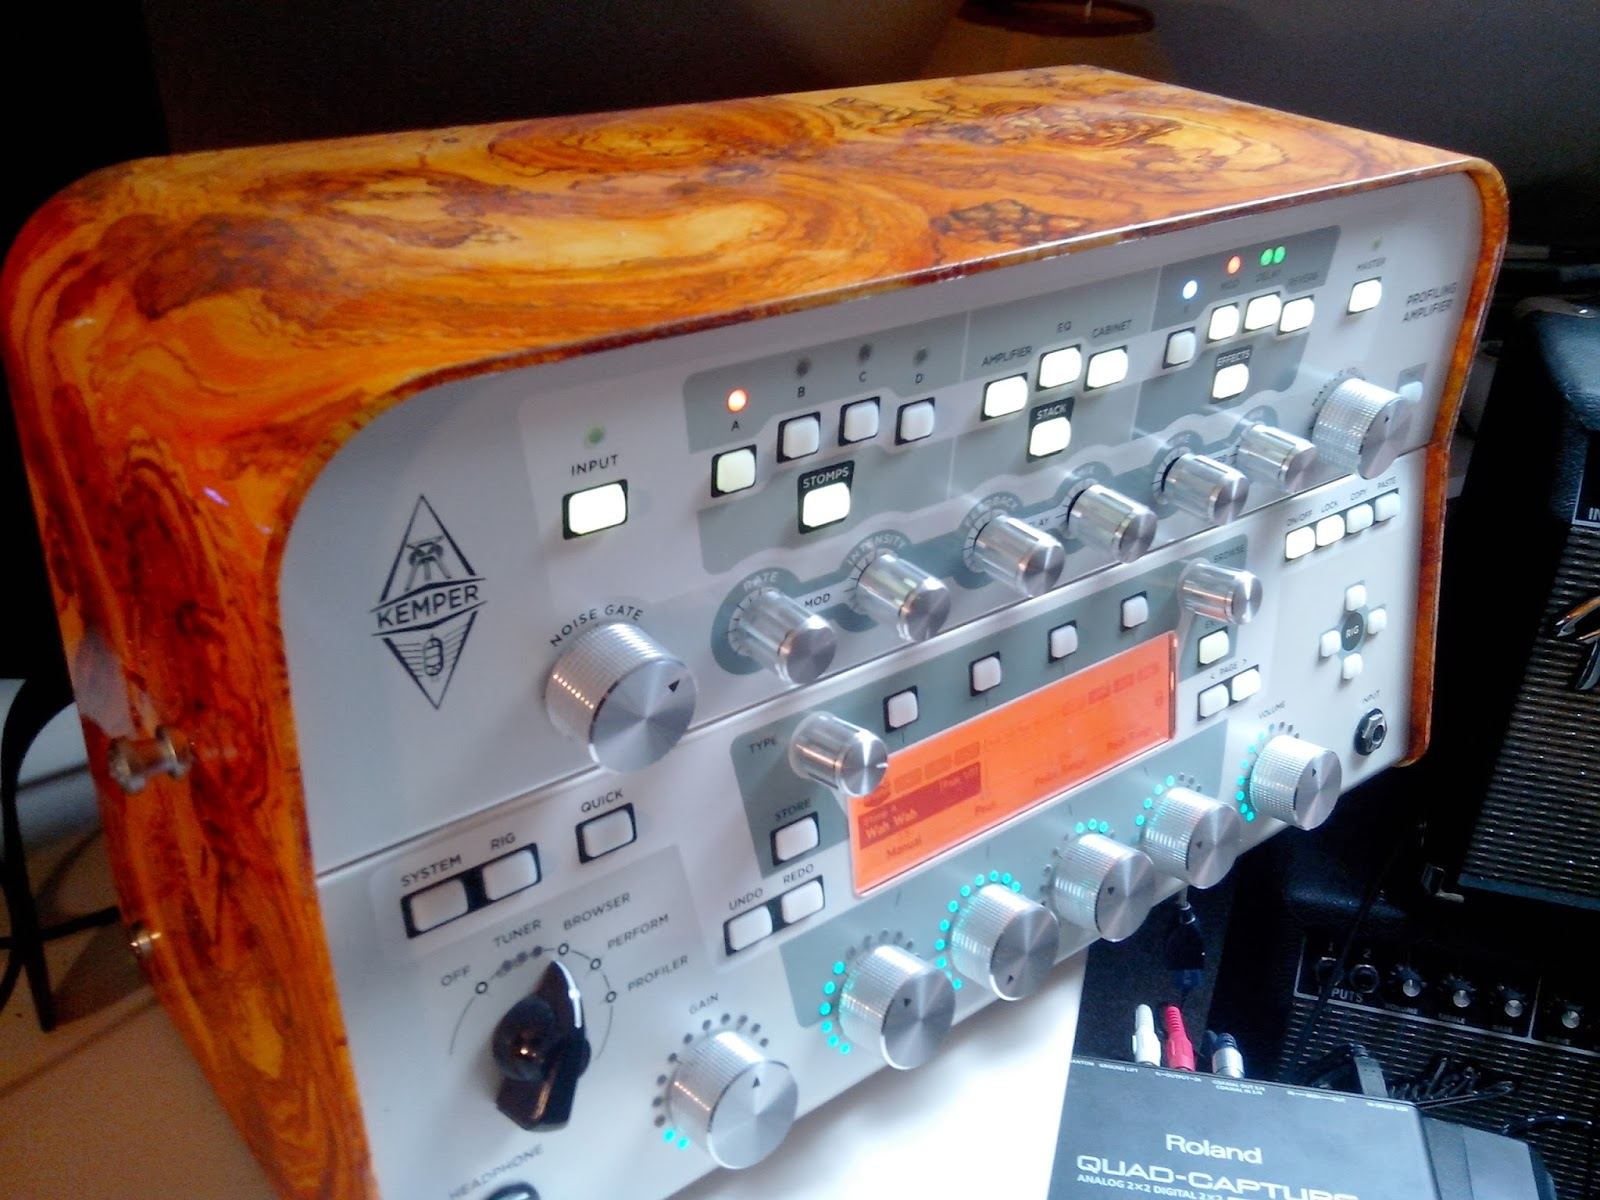 I'd like to change the knobs on my Kemper to nice wood knobs, is